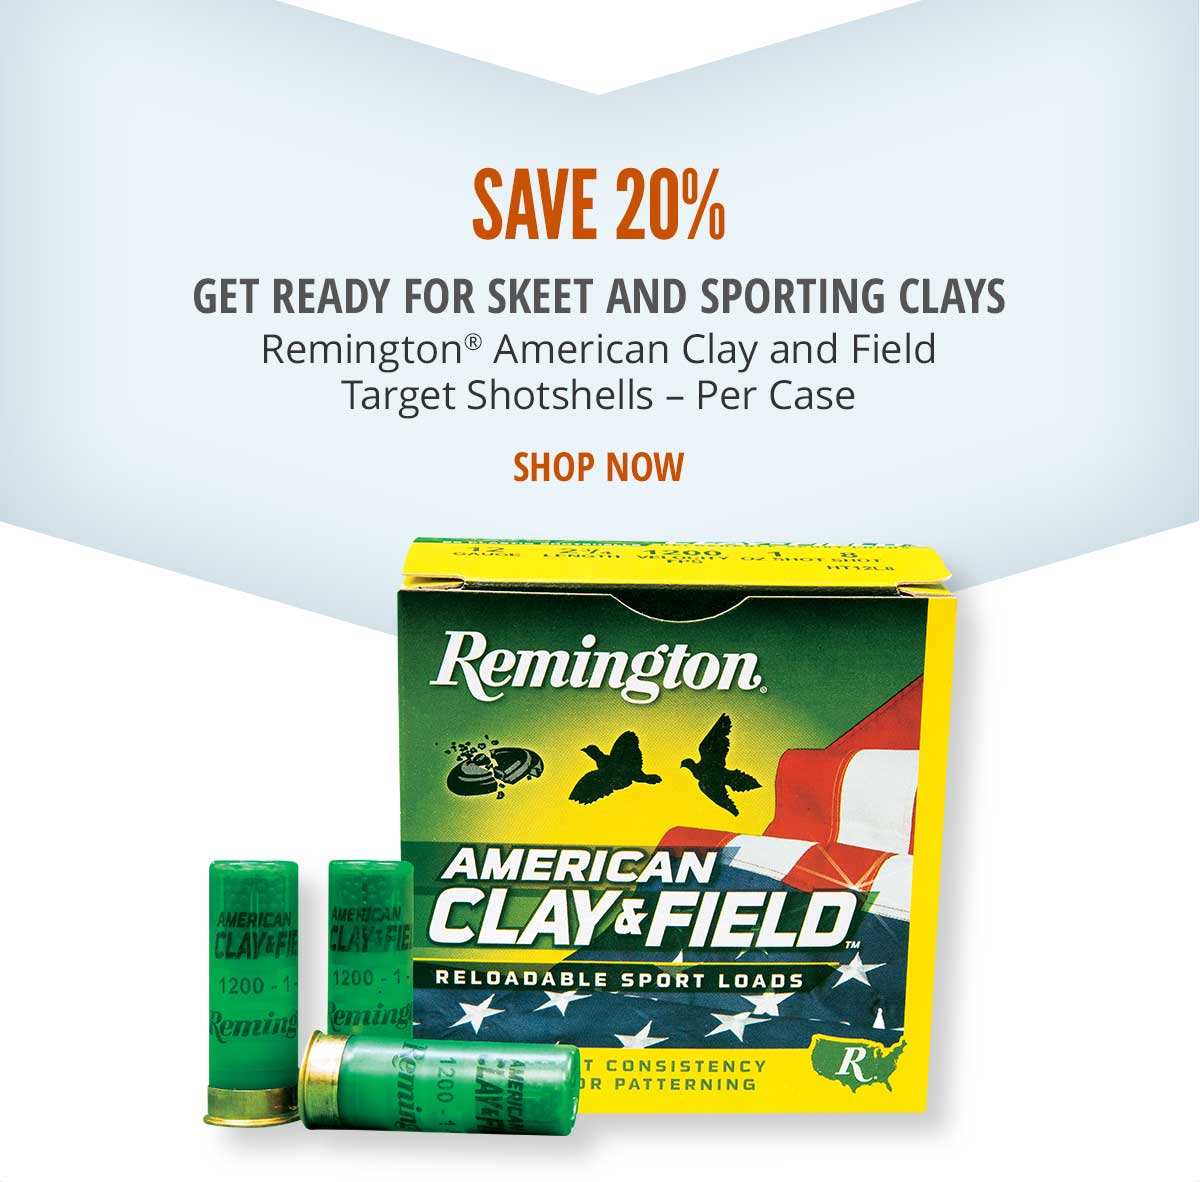 Save 20% and Get Ready for Skeet and Sporting Clays